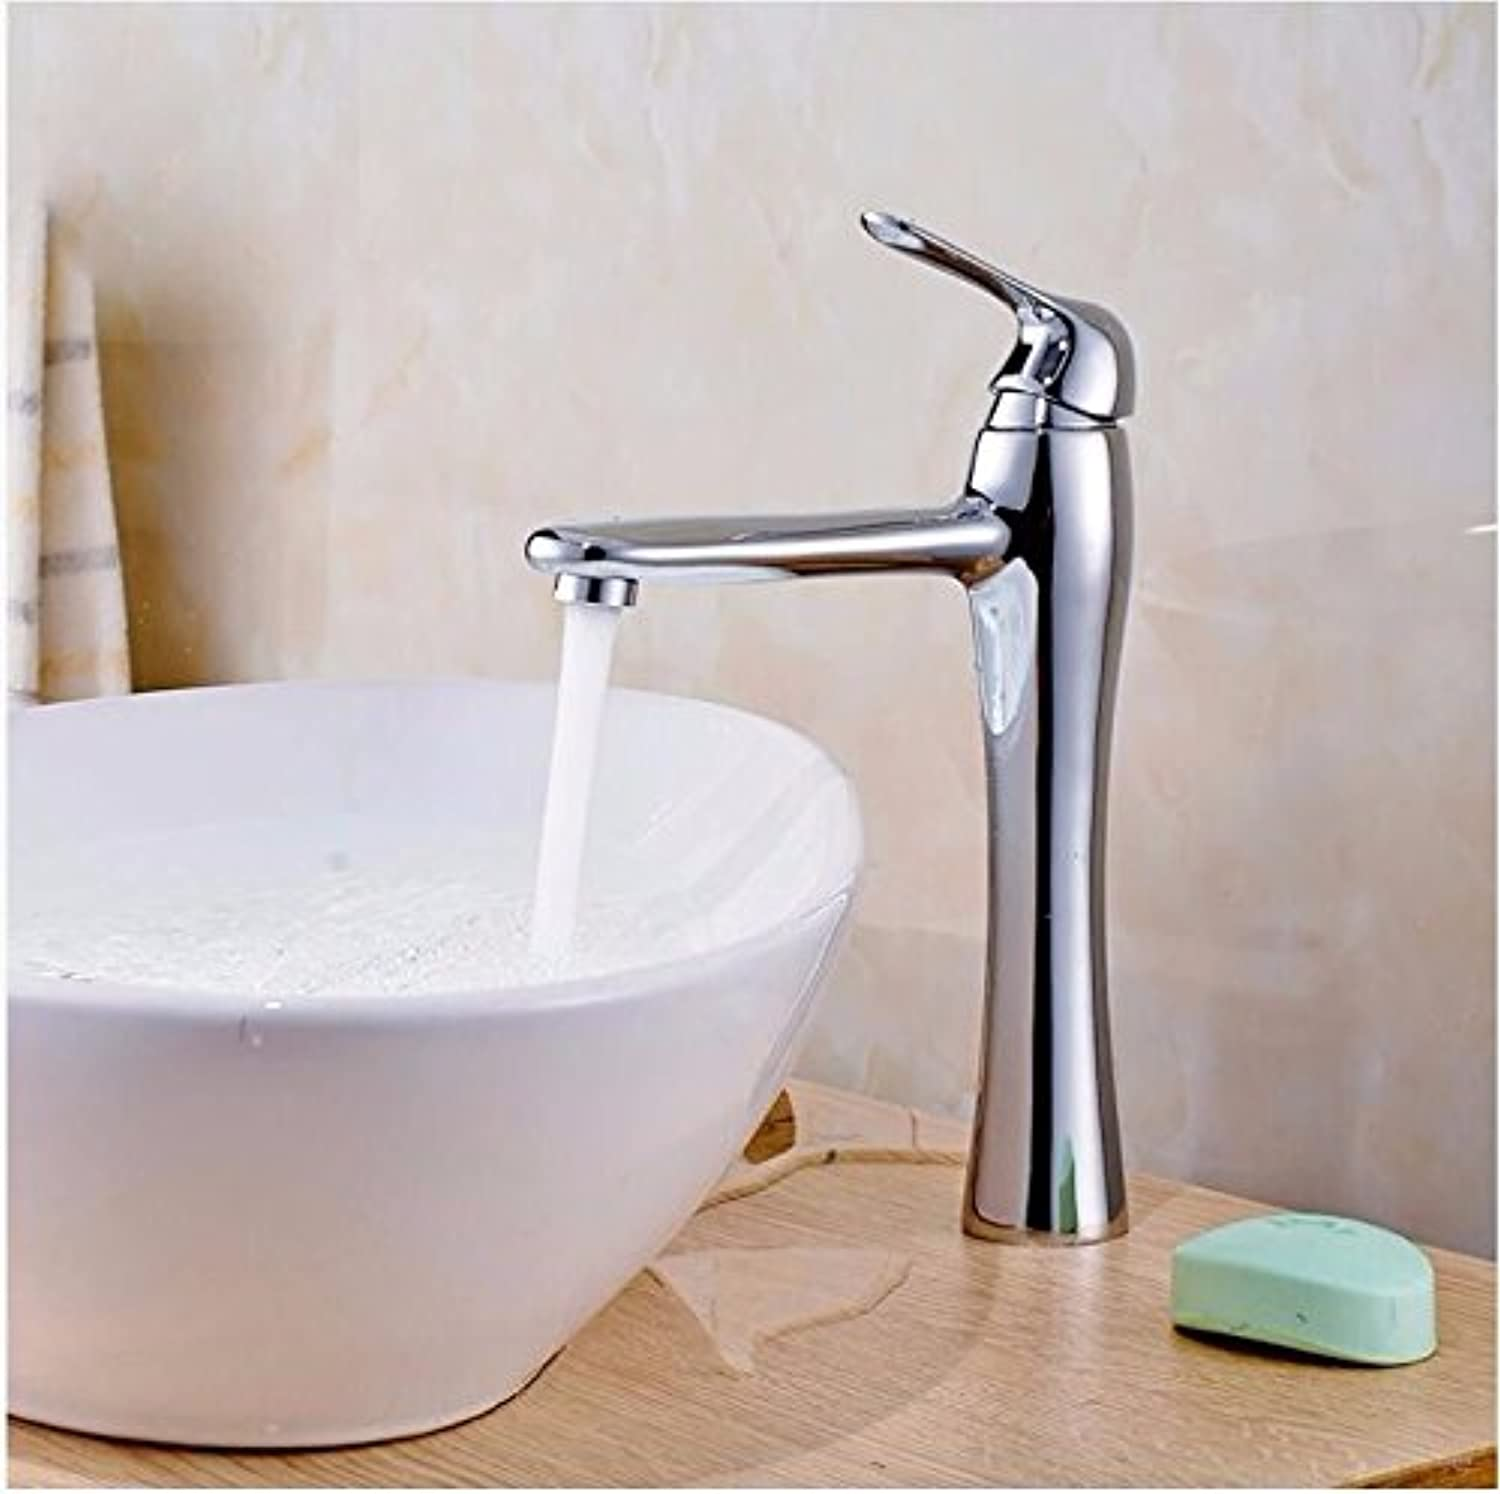 LHbox Basin Mixer Tap Bathroom Sink Faucet The brass taps, basin taps on the console, basin, hot and cold water faucets, single handle single hole Faucet